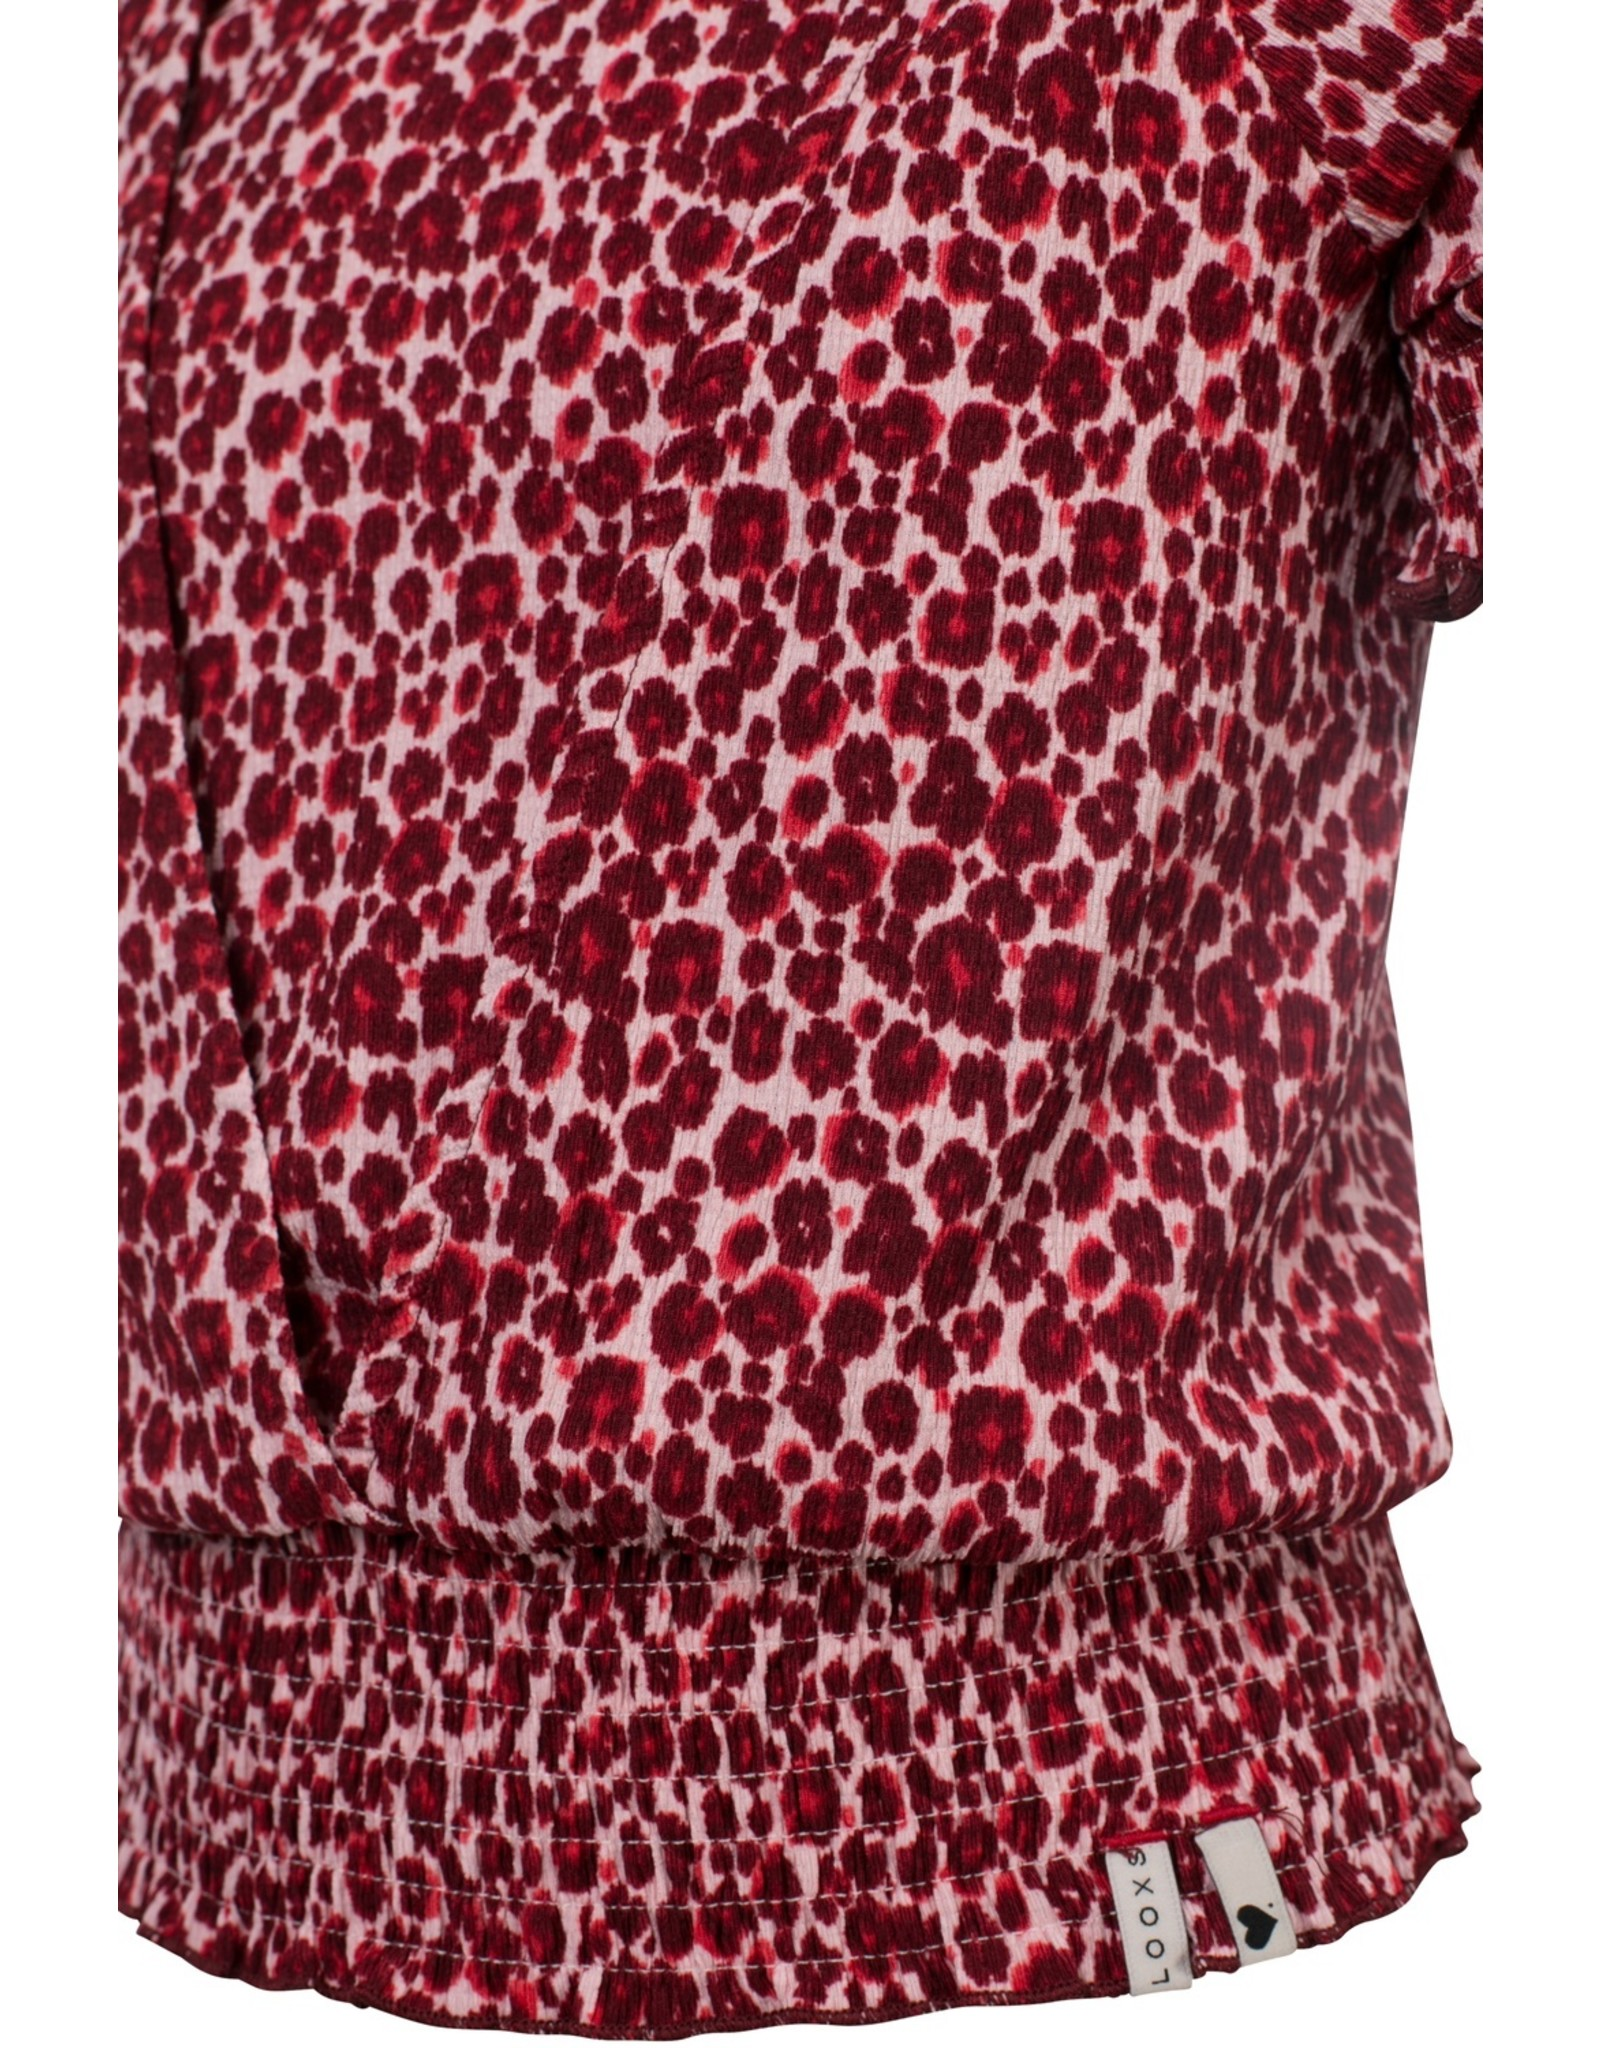 Looxs Girls woven wrap top pink panther